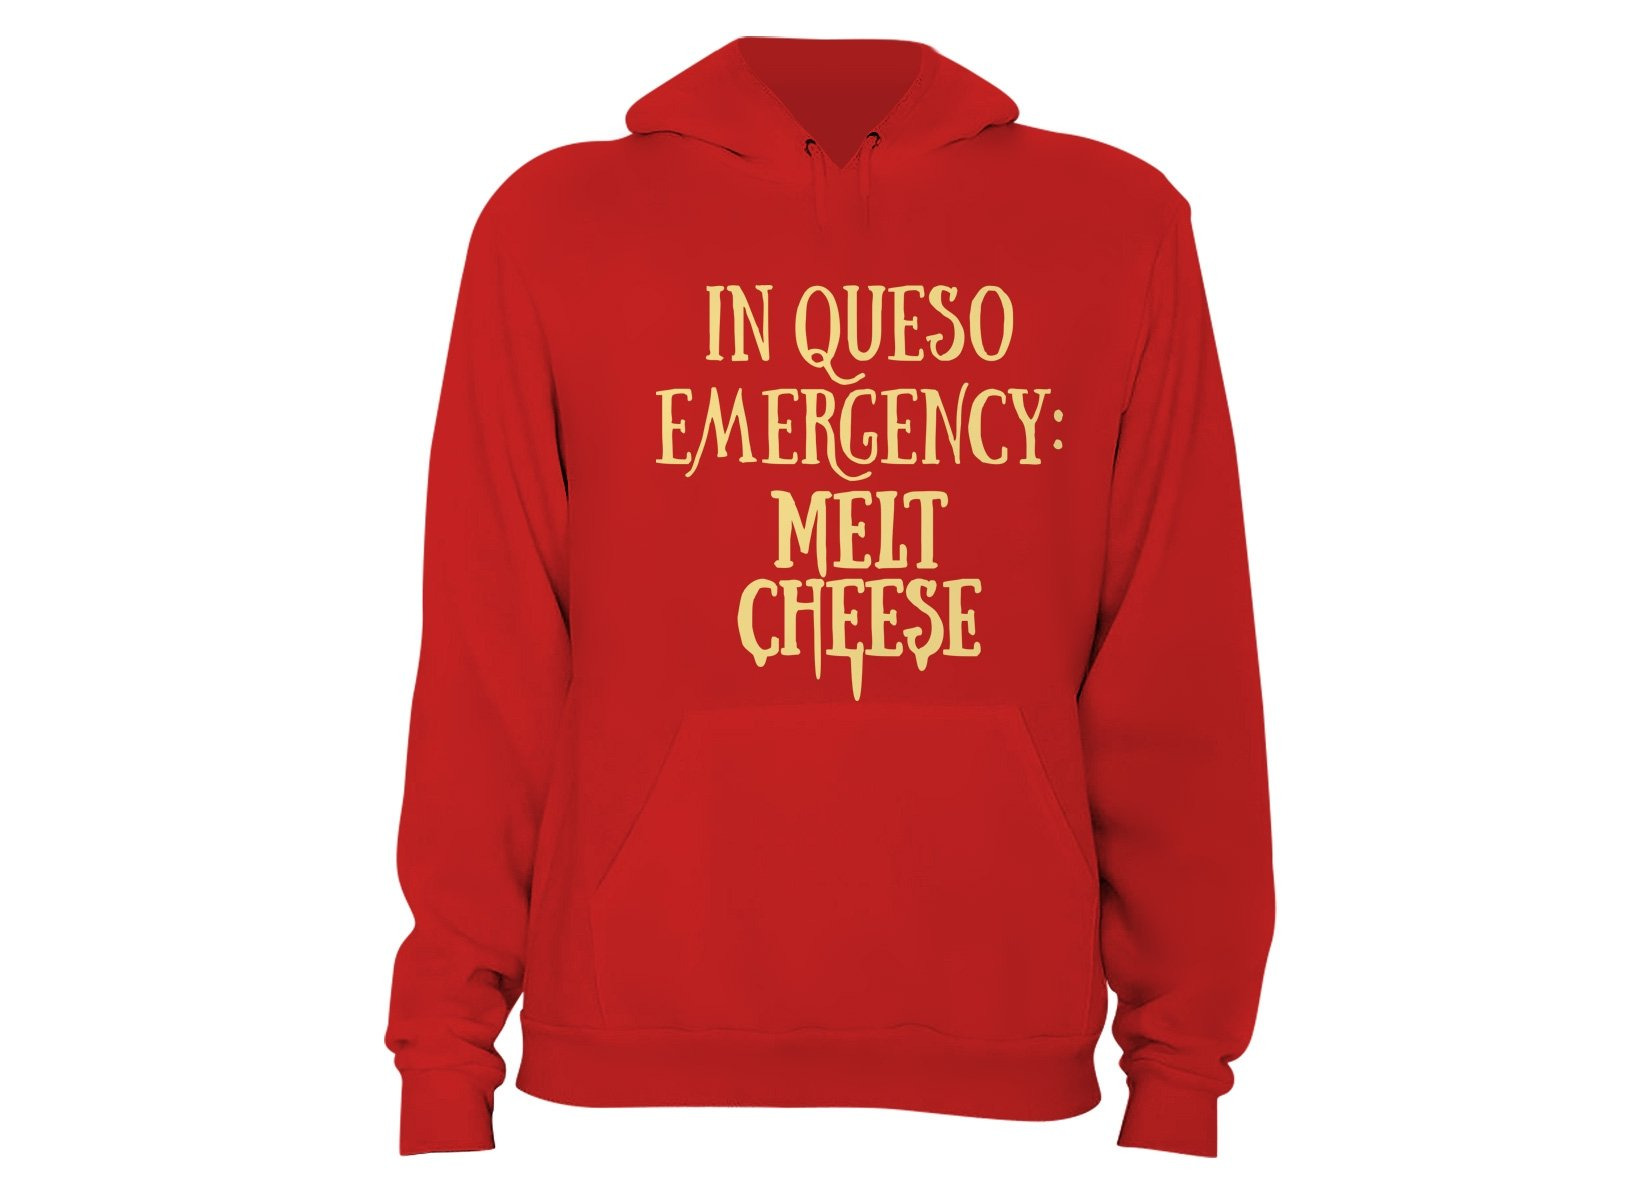 In Queso Emergency: Melt Cheese on Hoodie